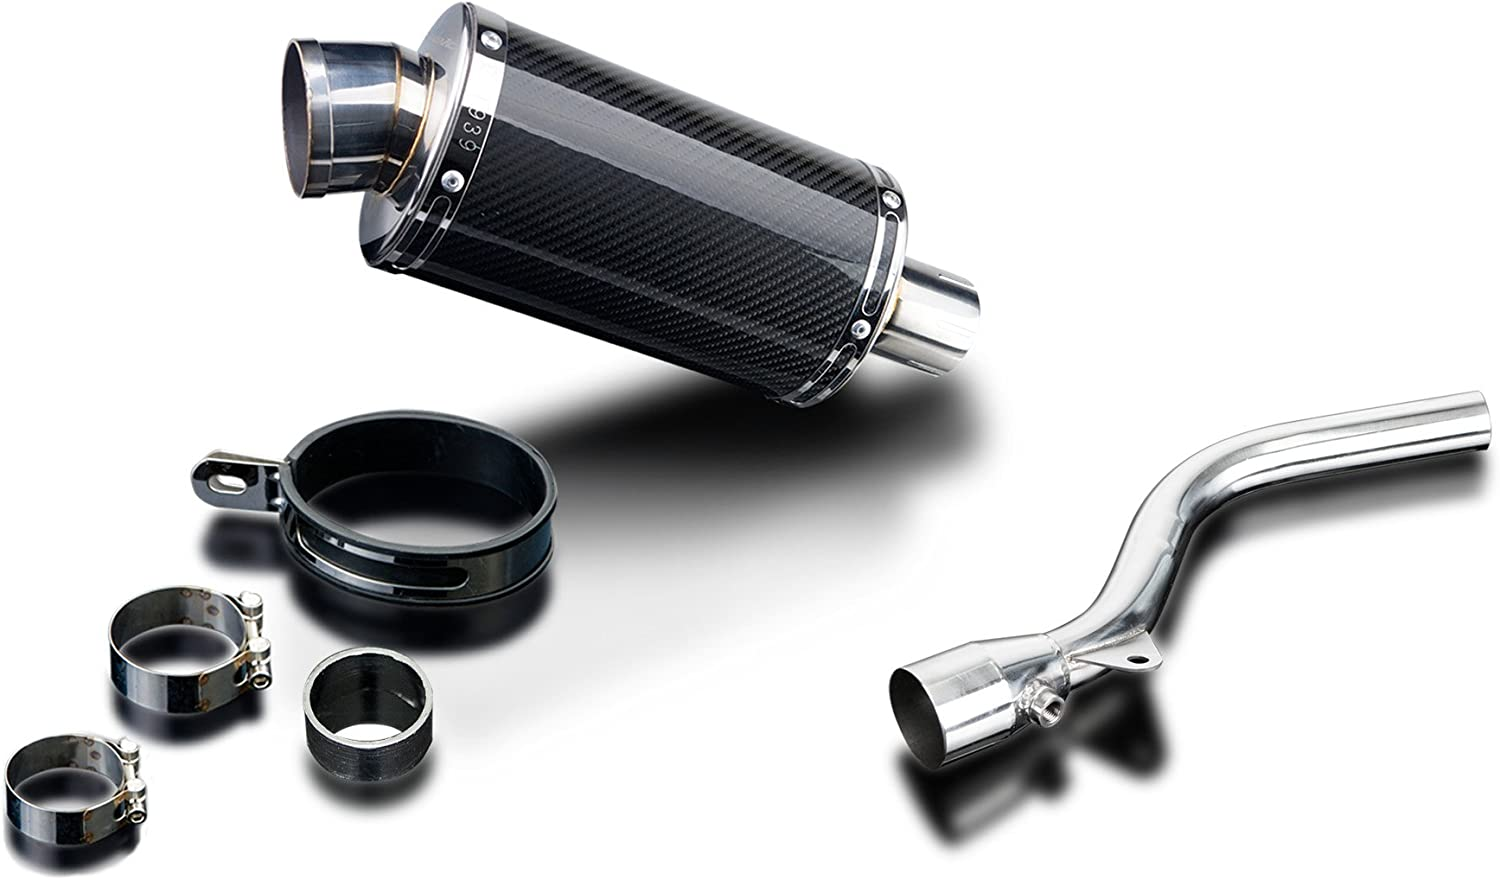 Delkevic De-Cat Aftermarket Slip On compatible with Kawasaki KLX250 DS70 9 Carbon Fiber Oval Muffler Exhaust 09-16